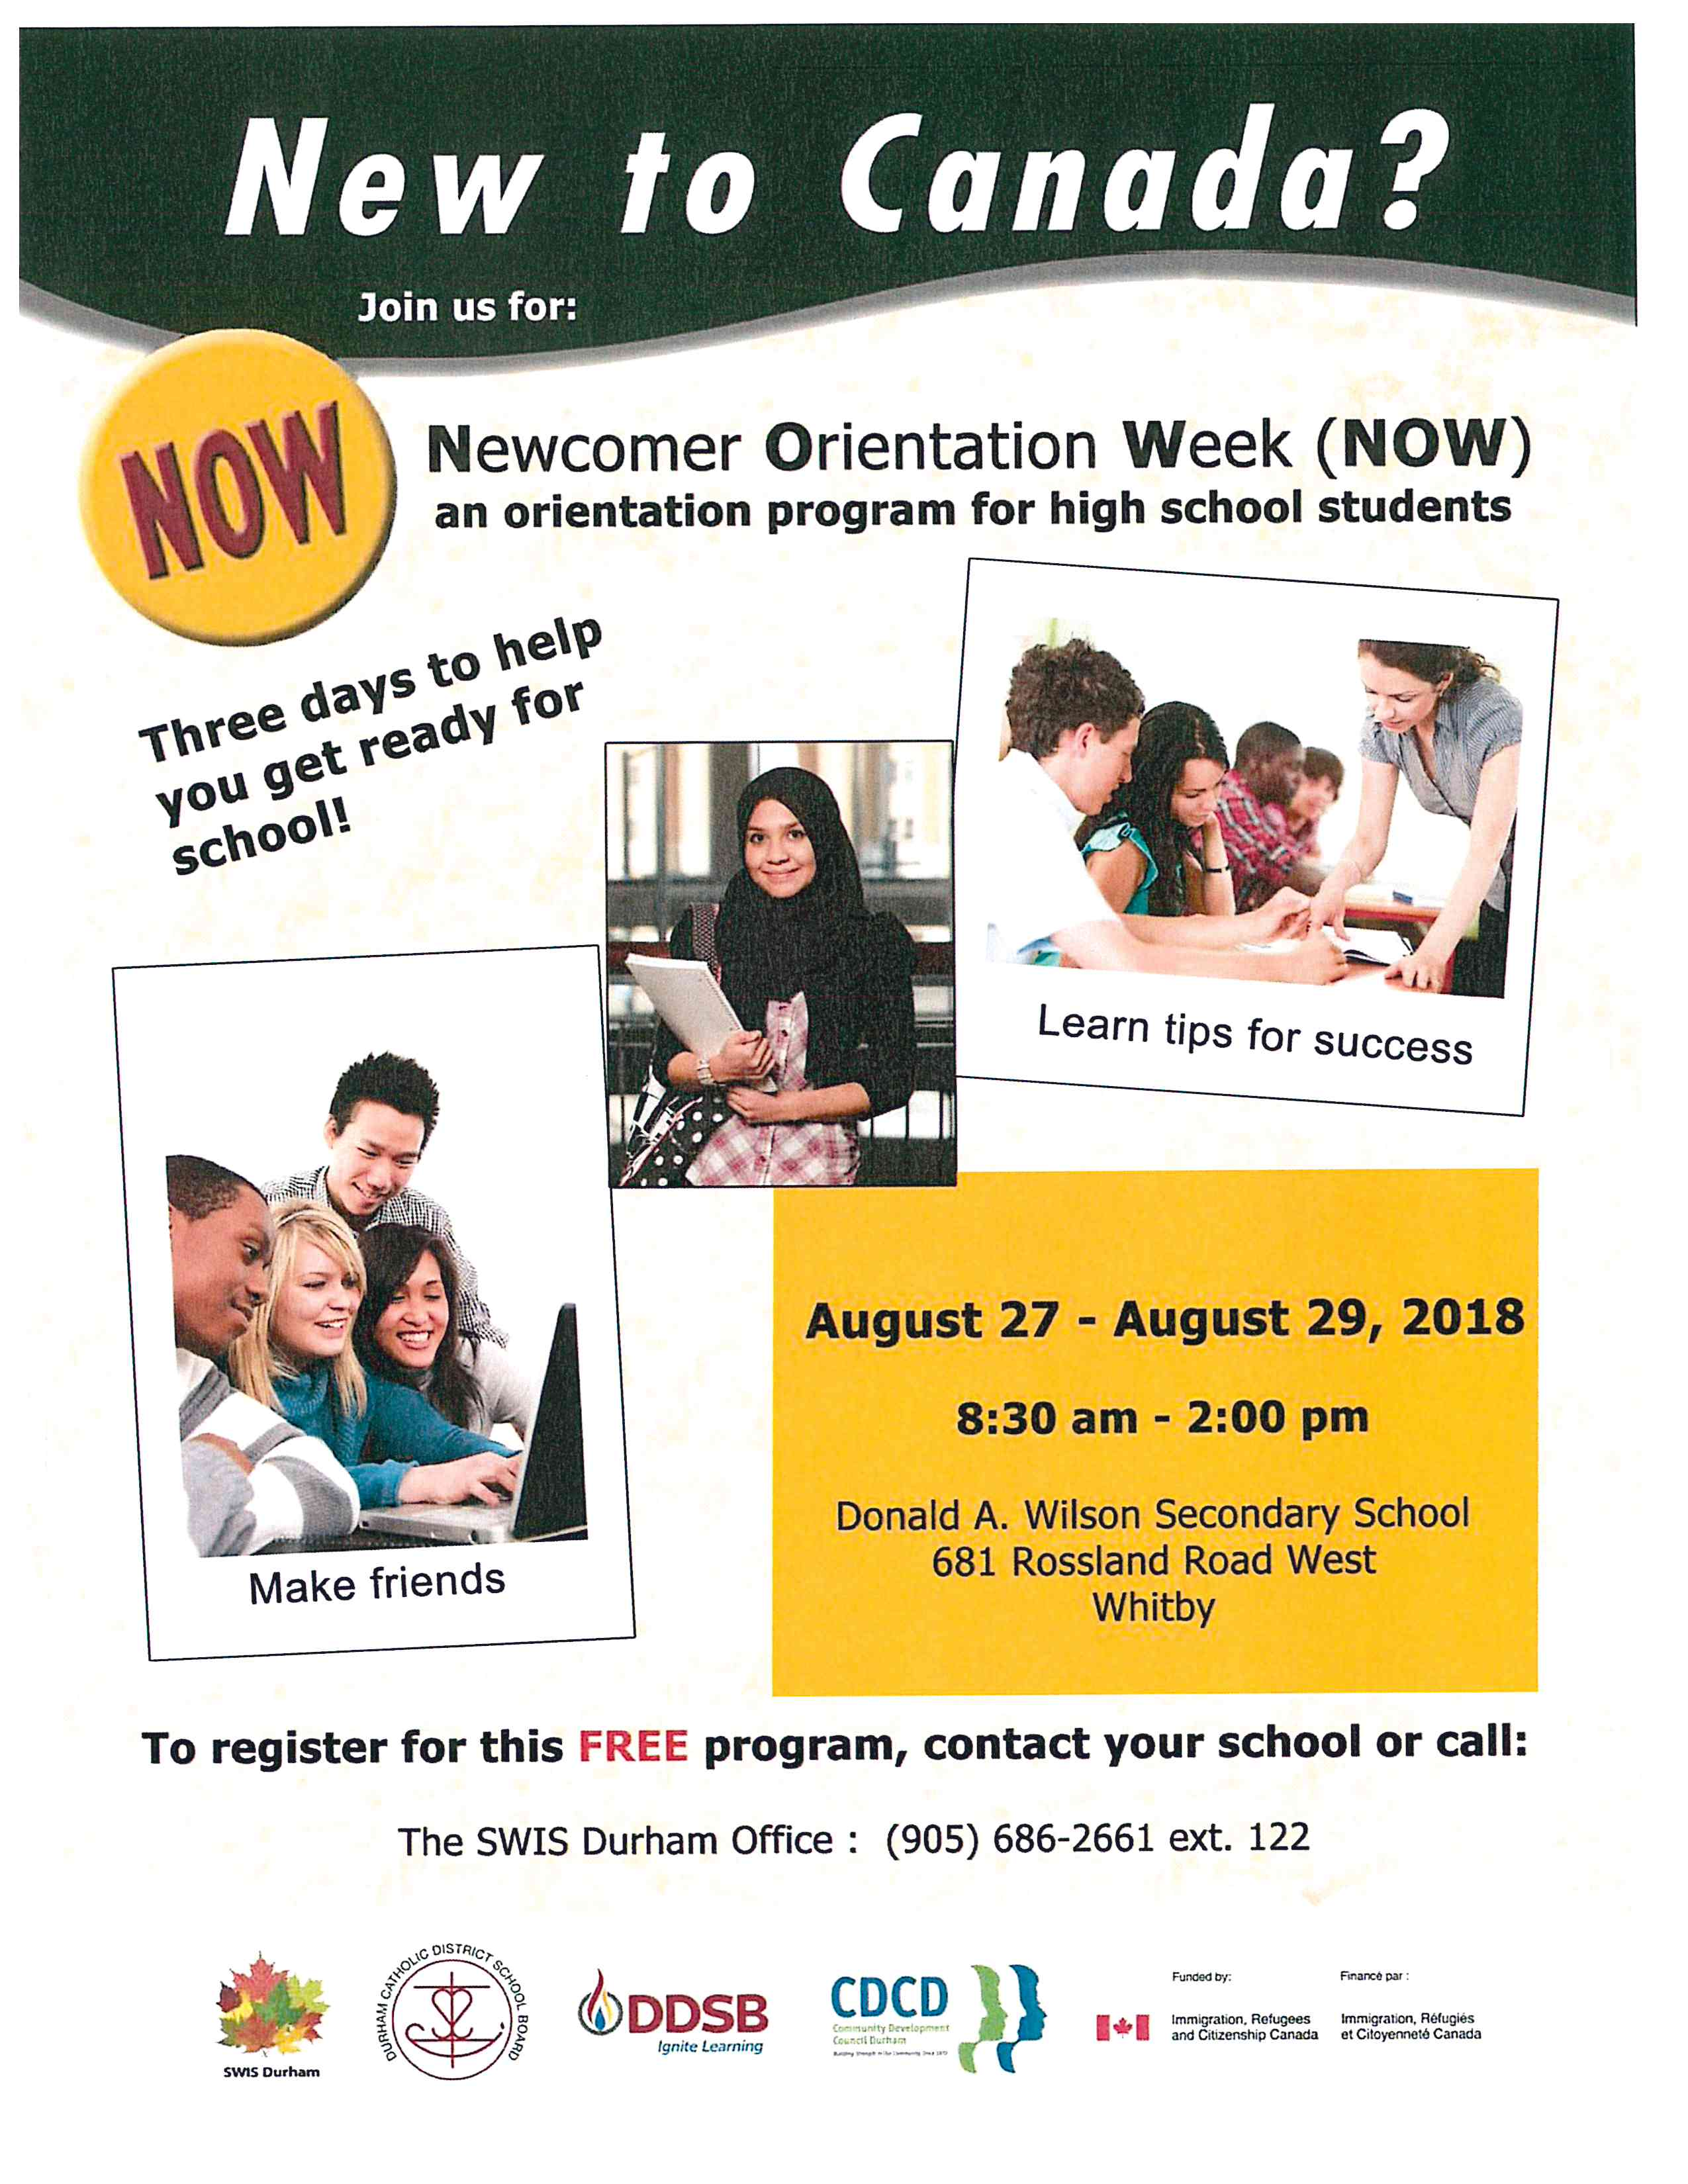 Flyer promoting Newcomer Orientation Week for high school students